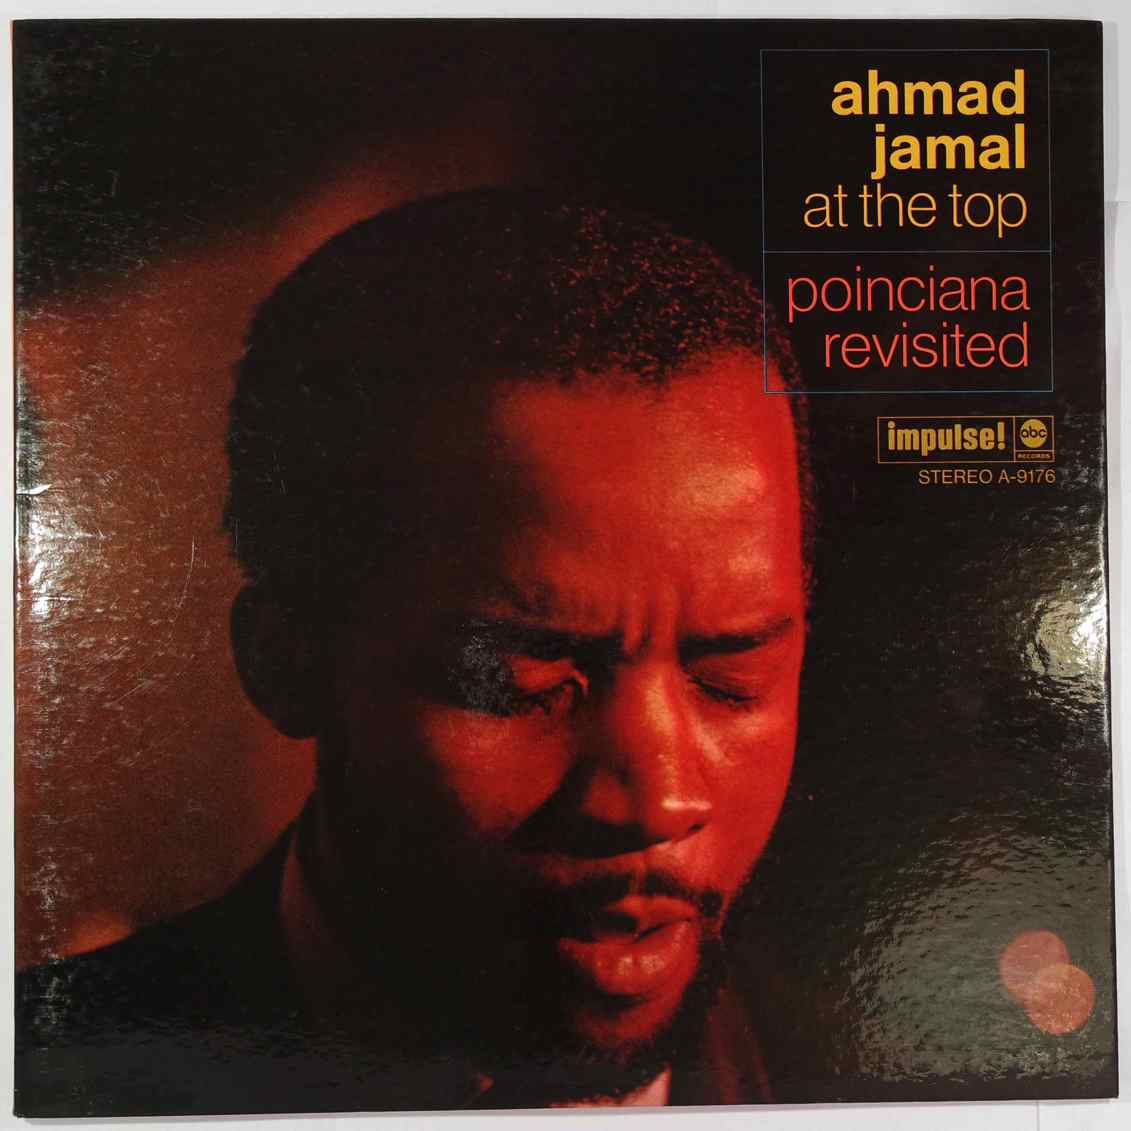 Ahmad Jamal At The Top (Poinciana Revisited)